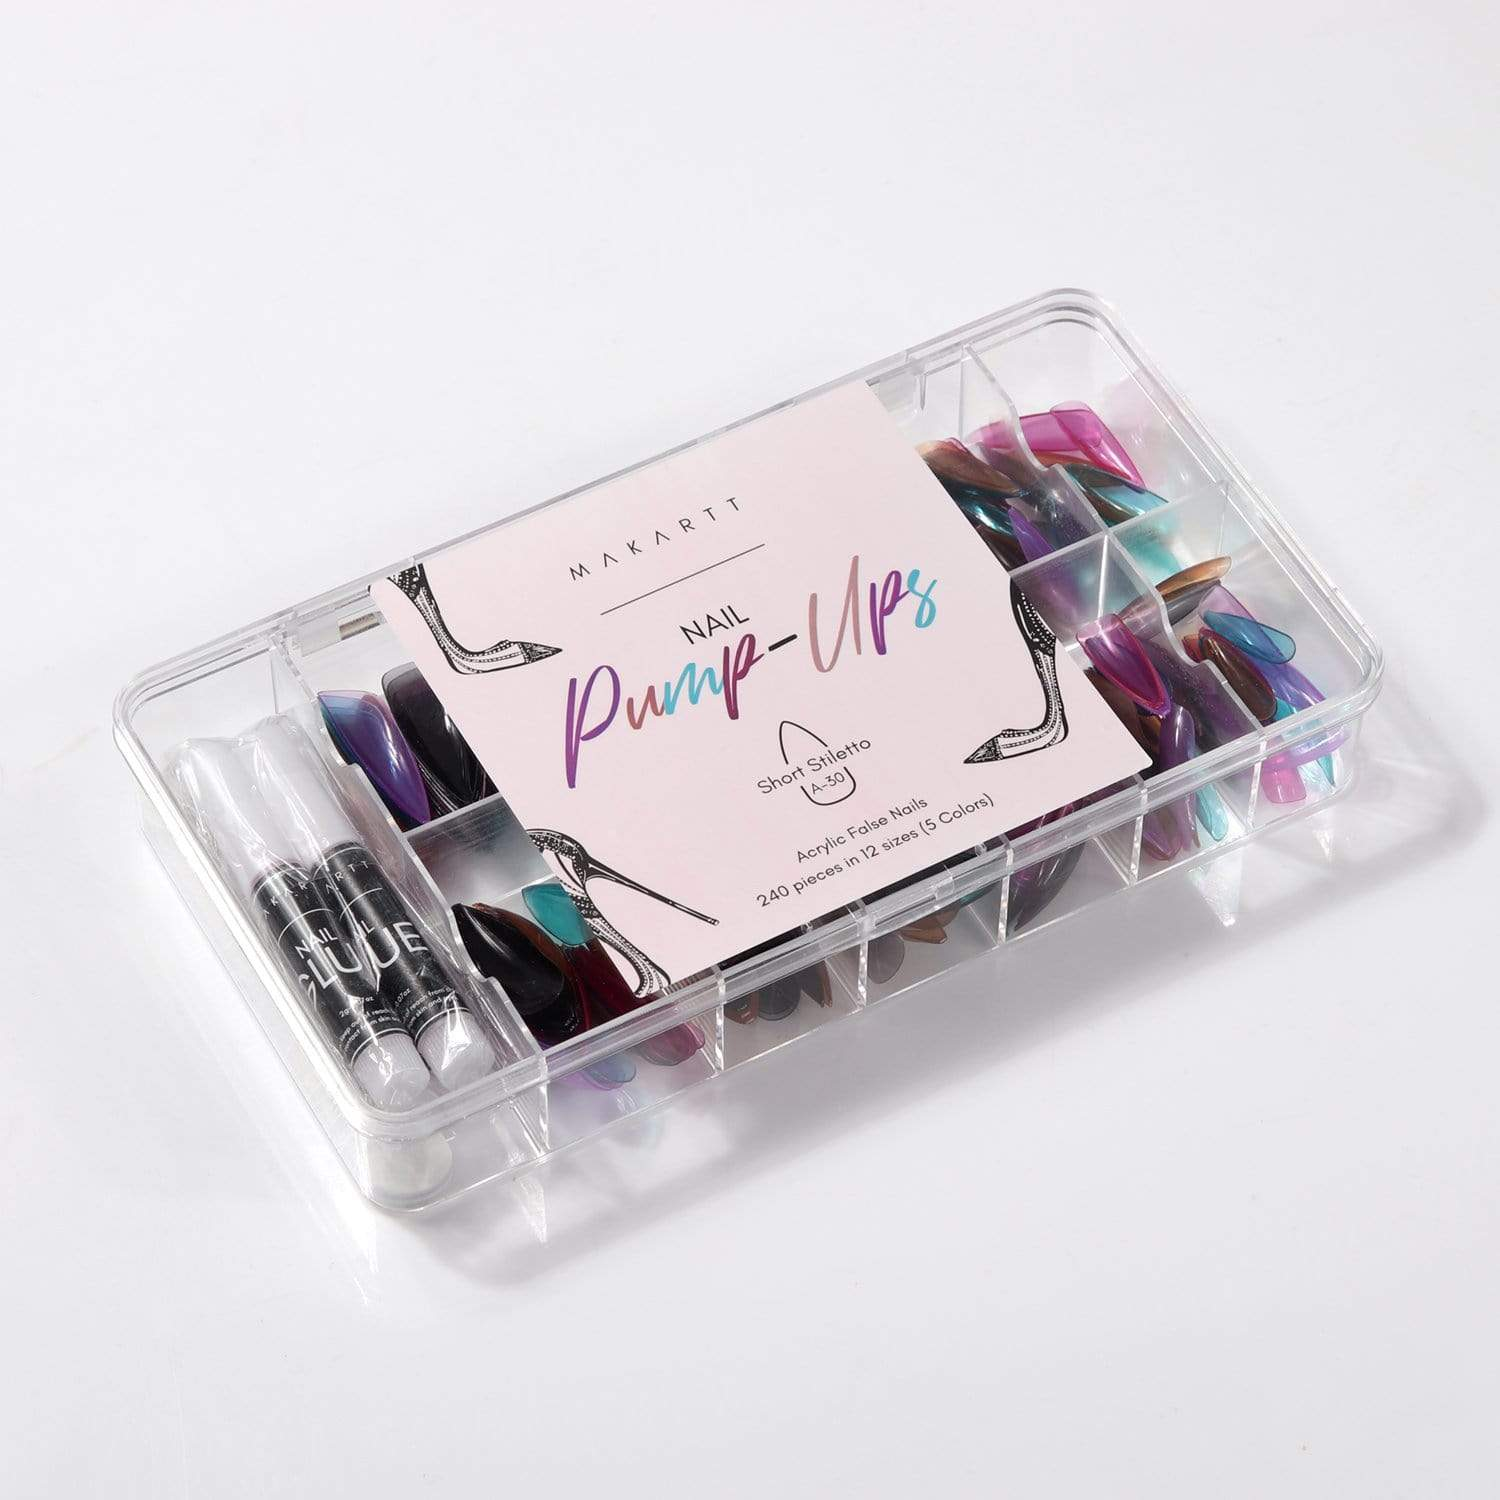 Nail Pump-Ups in Girls' Night Out (240 Pieces) - Makartt